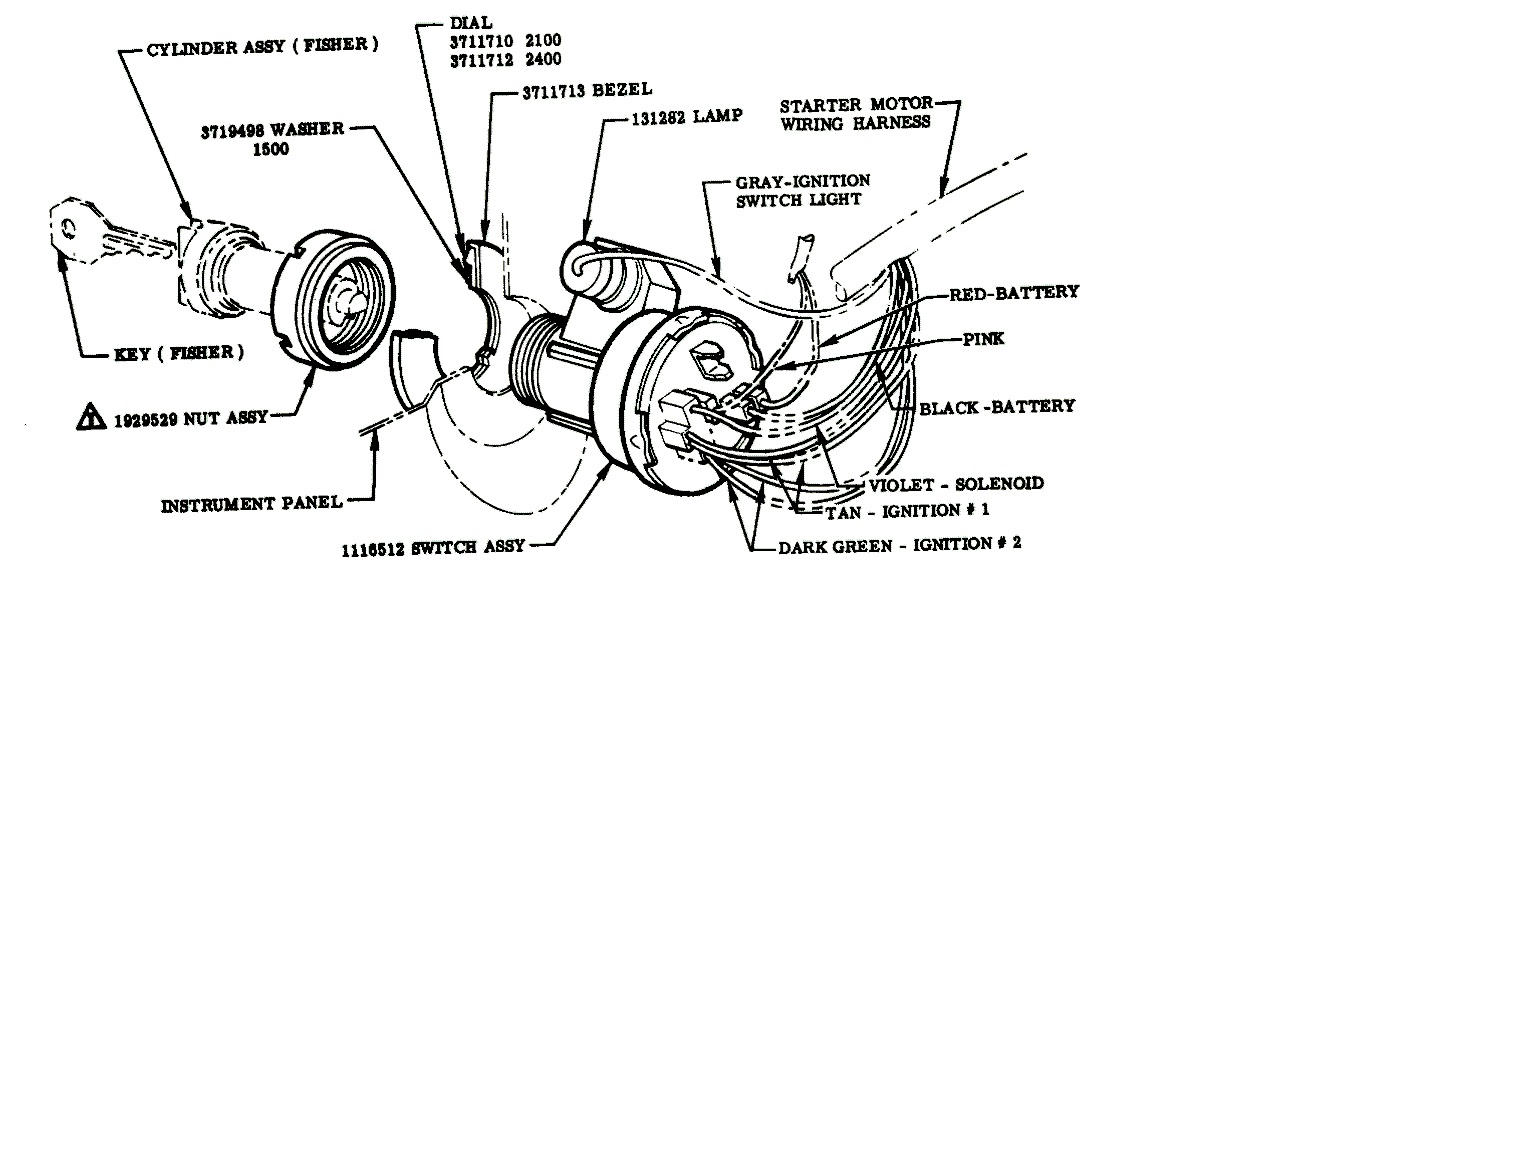 Tractor Truck 55 Chevy Ignition Switch Wiring Diagram 1958 Bissell 9e02 Parts List And Ereplacementpartscom 1955 Enthusiast Diagrams U2022 Rh Rasalibre Co